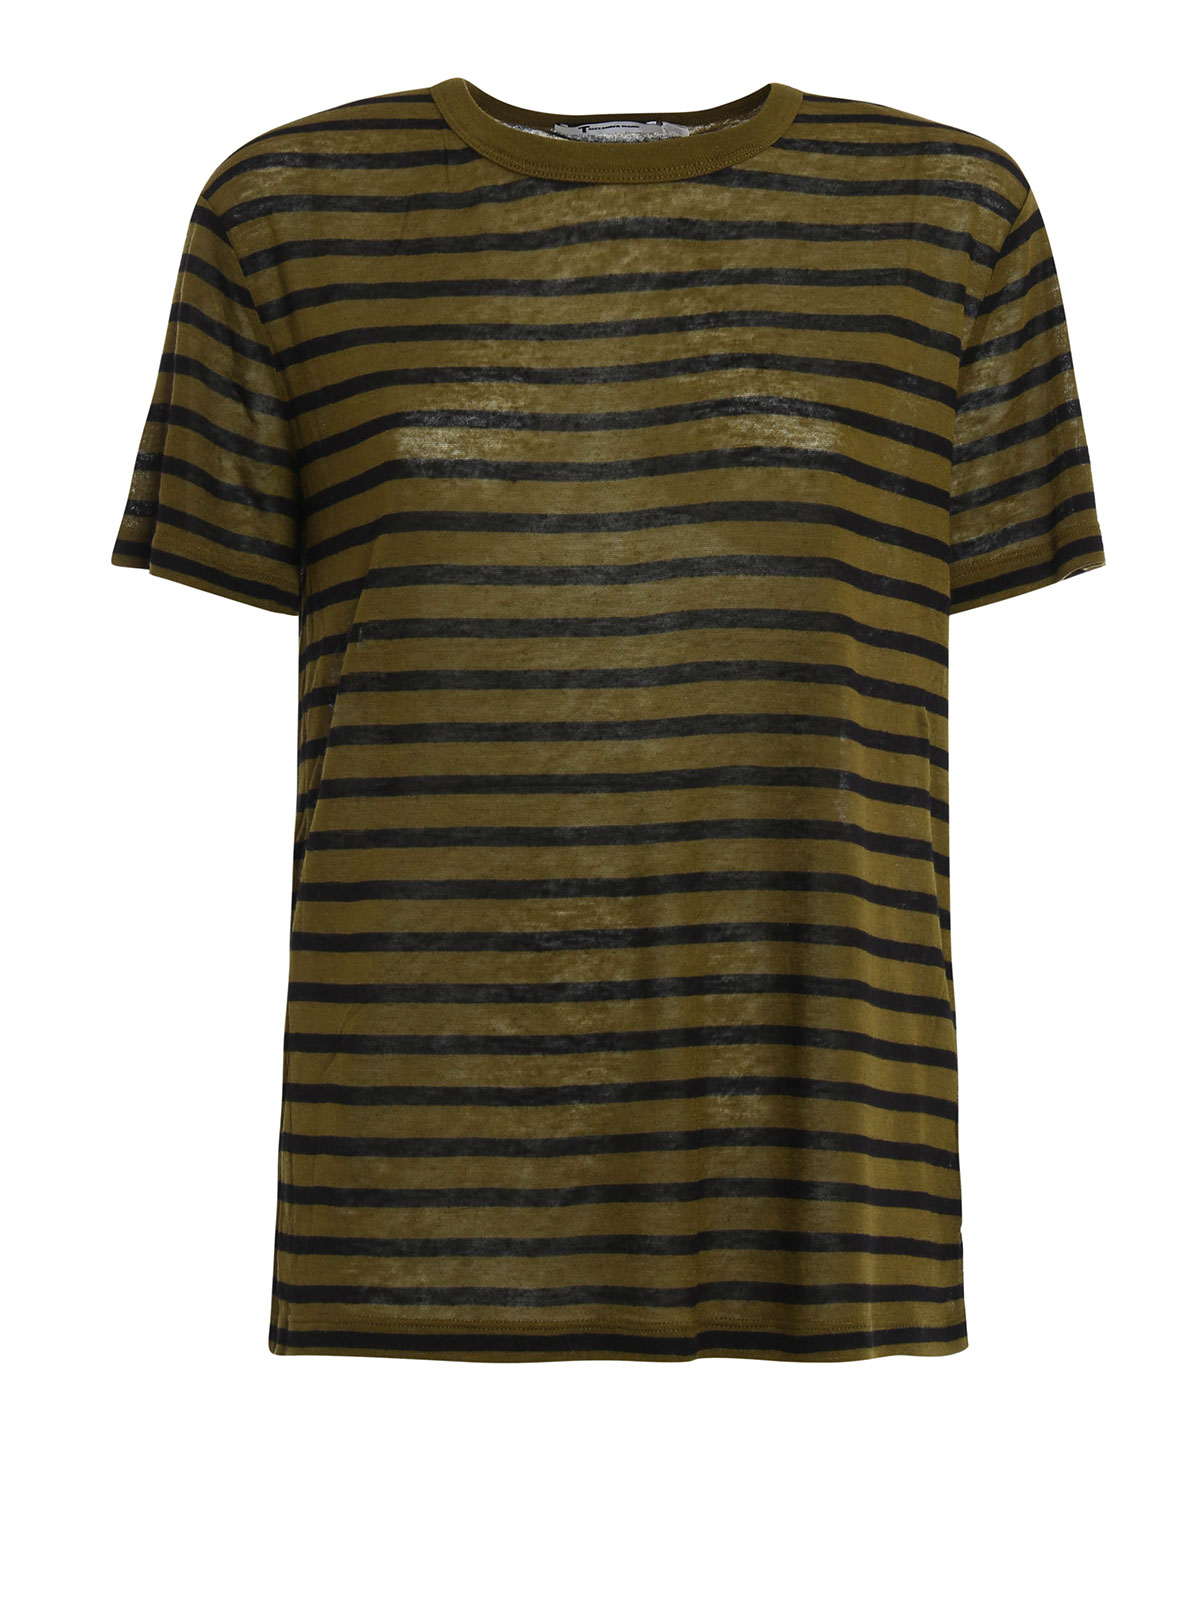 Striped lightweight tee by t by alexander wang t shirts for Alexander wang t shirts